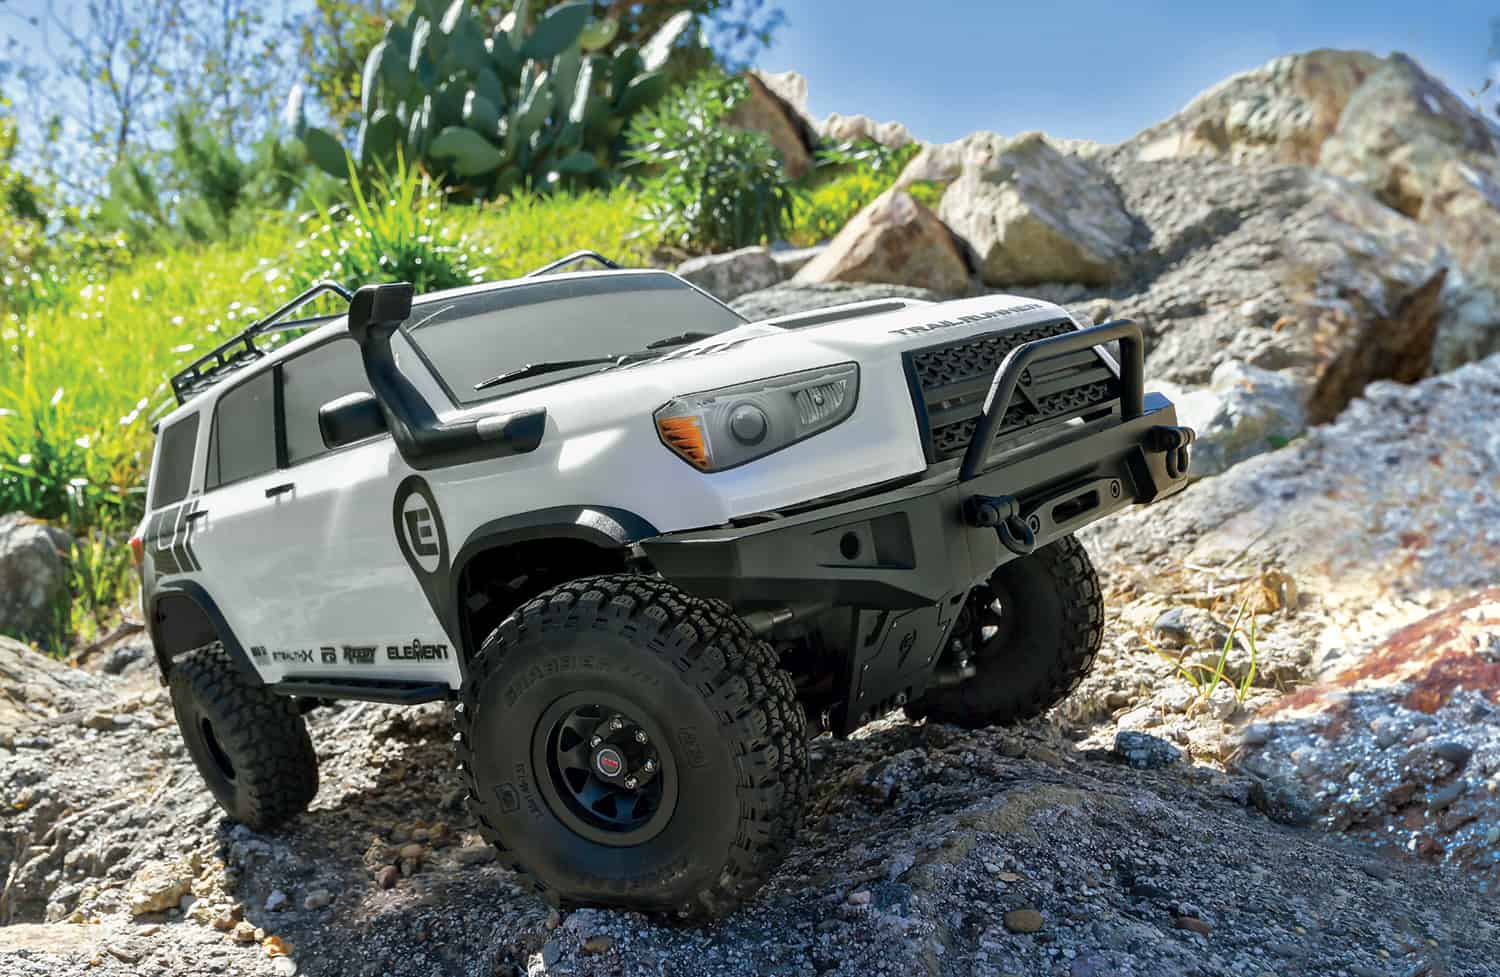 See it in Action: Element RC Enduro Trailrunner RTR